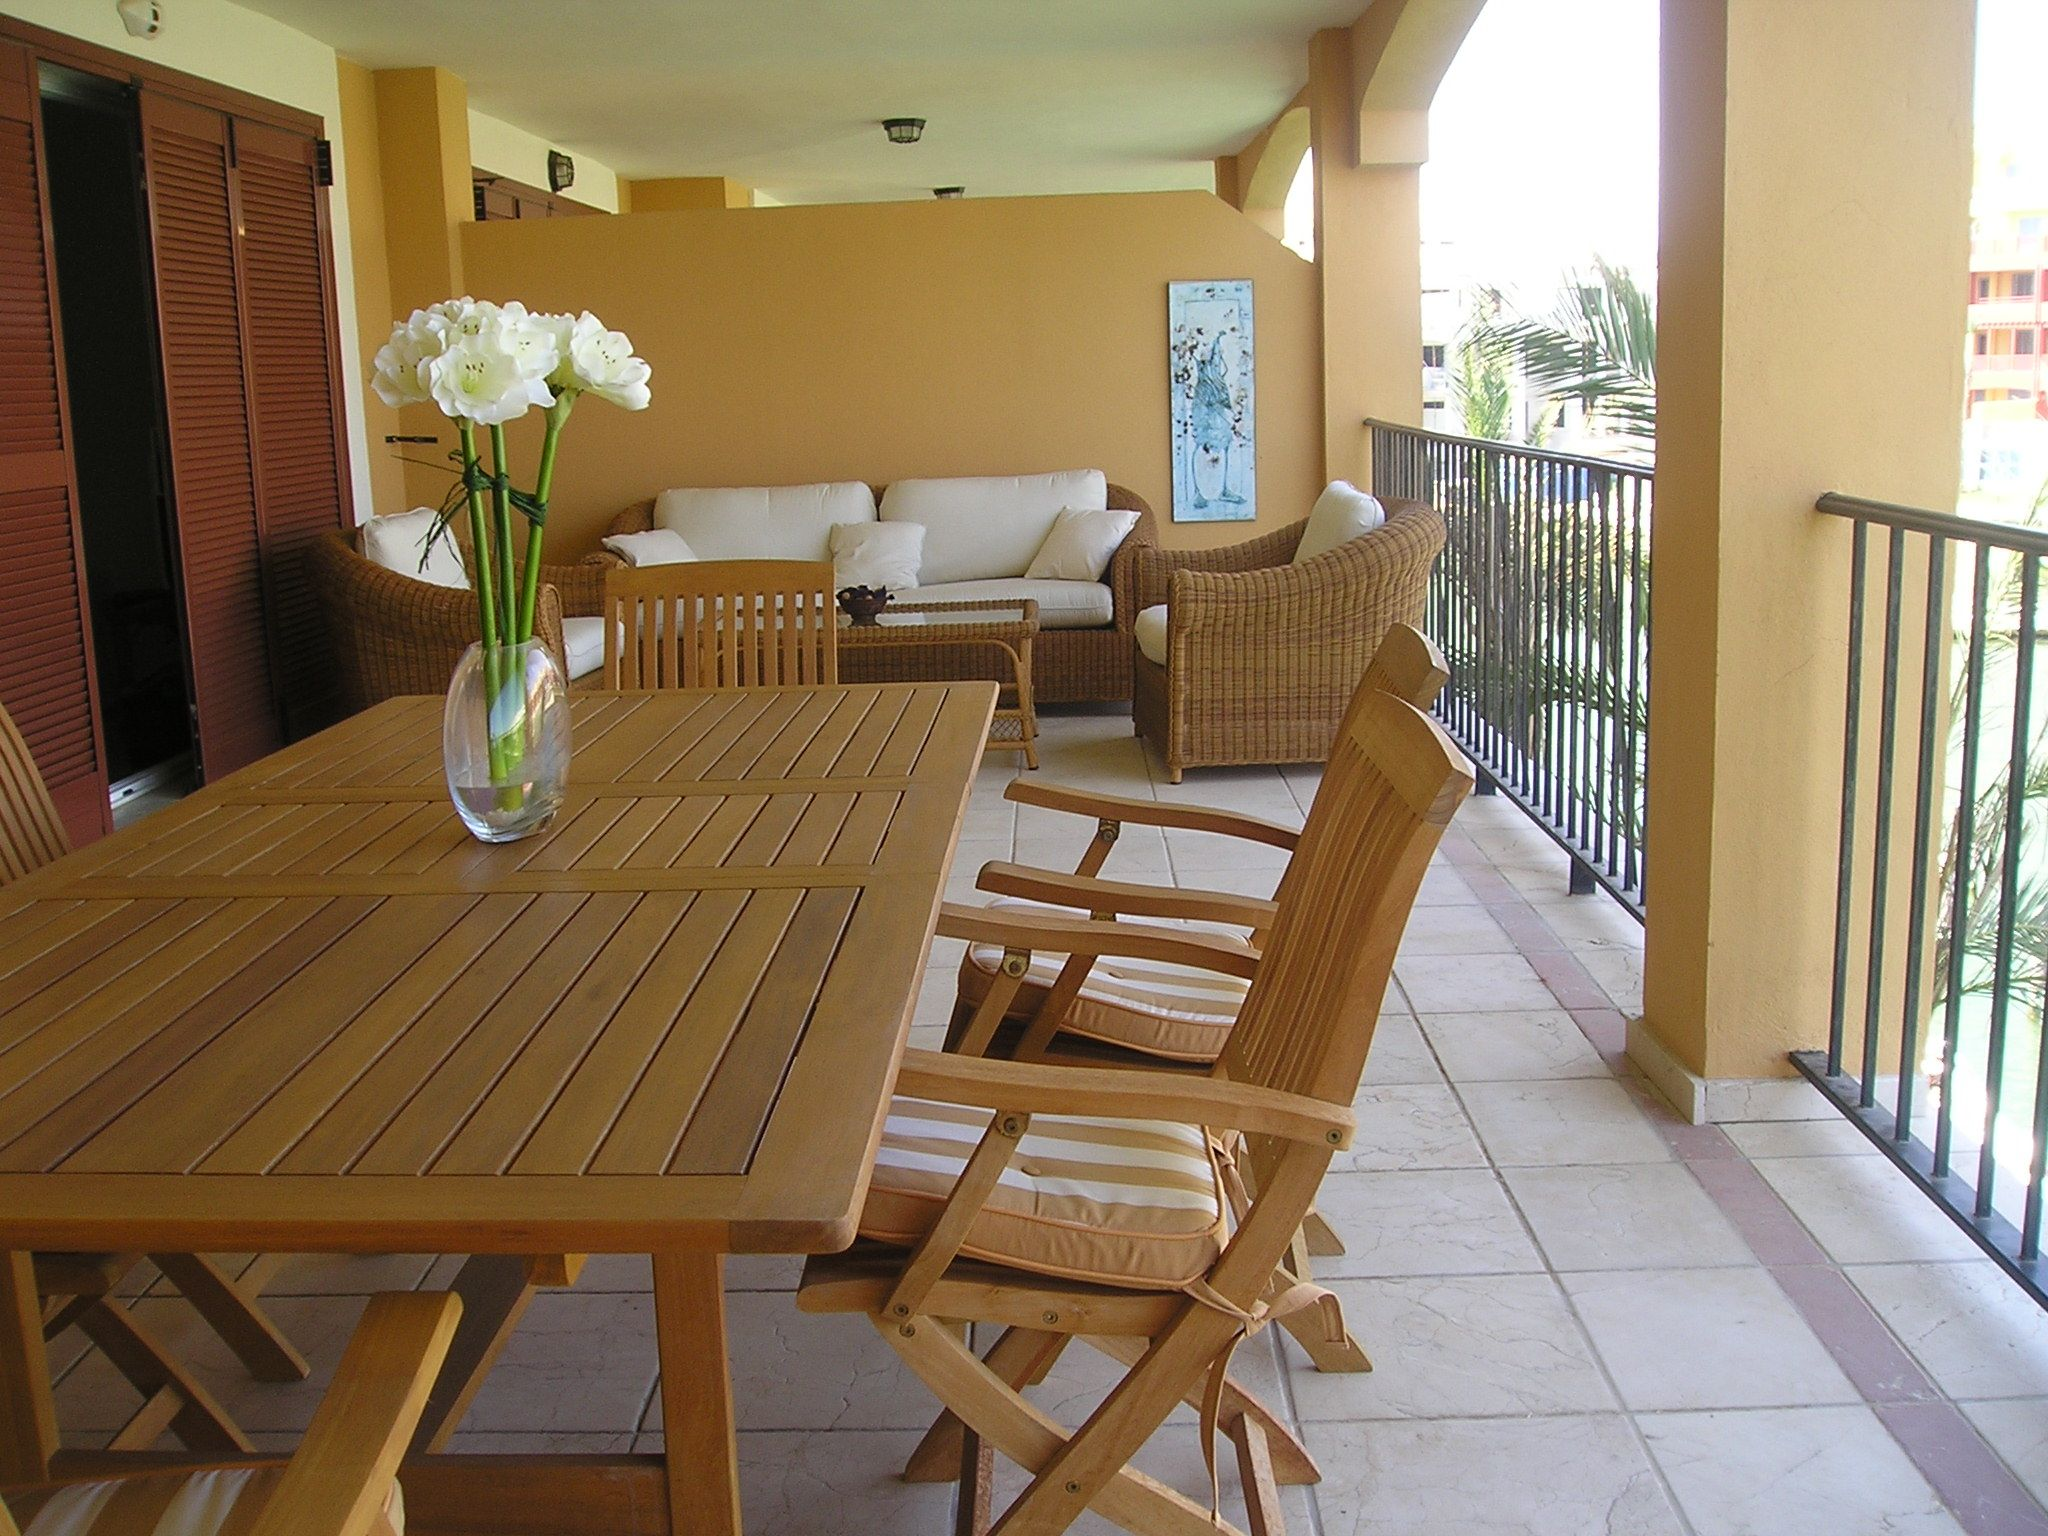 Apartment in Sotogrande marina available for long term rental